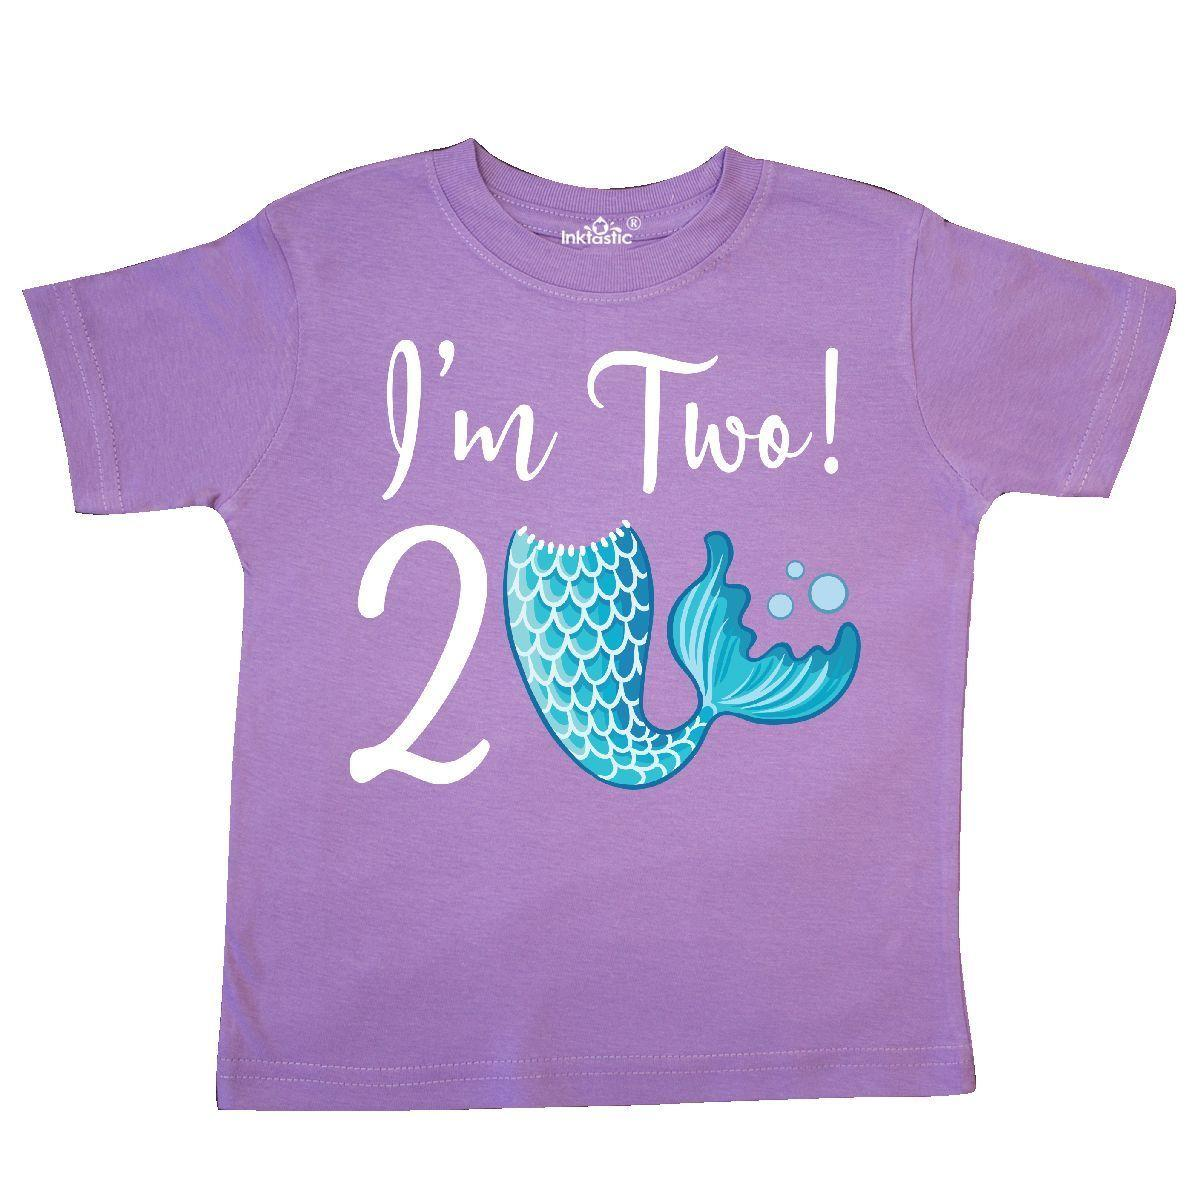 Inktastic 2nd Birthday Girls Mermaid Party Toddler T Shirt 2 Year Old Two Tail Funny Unisex Casual Tee Gift Awesome Shirts Cotton From Spirit